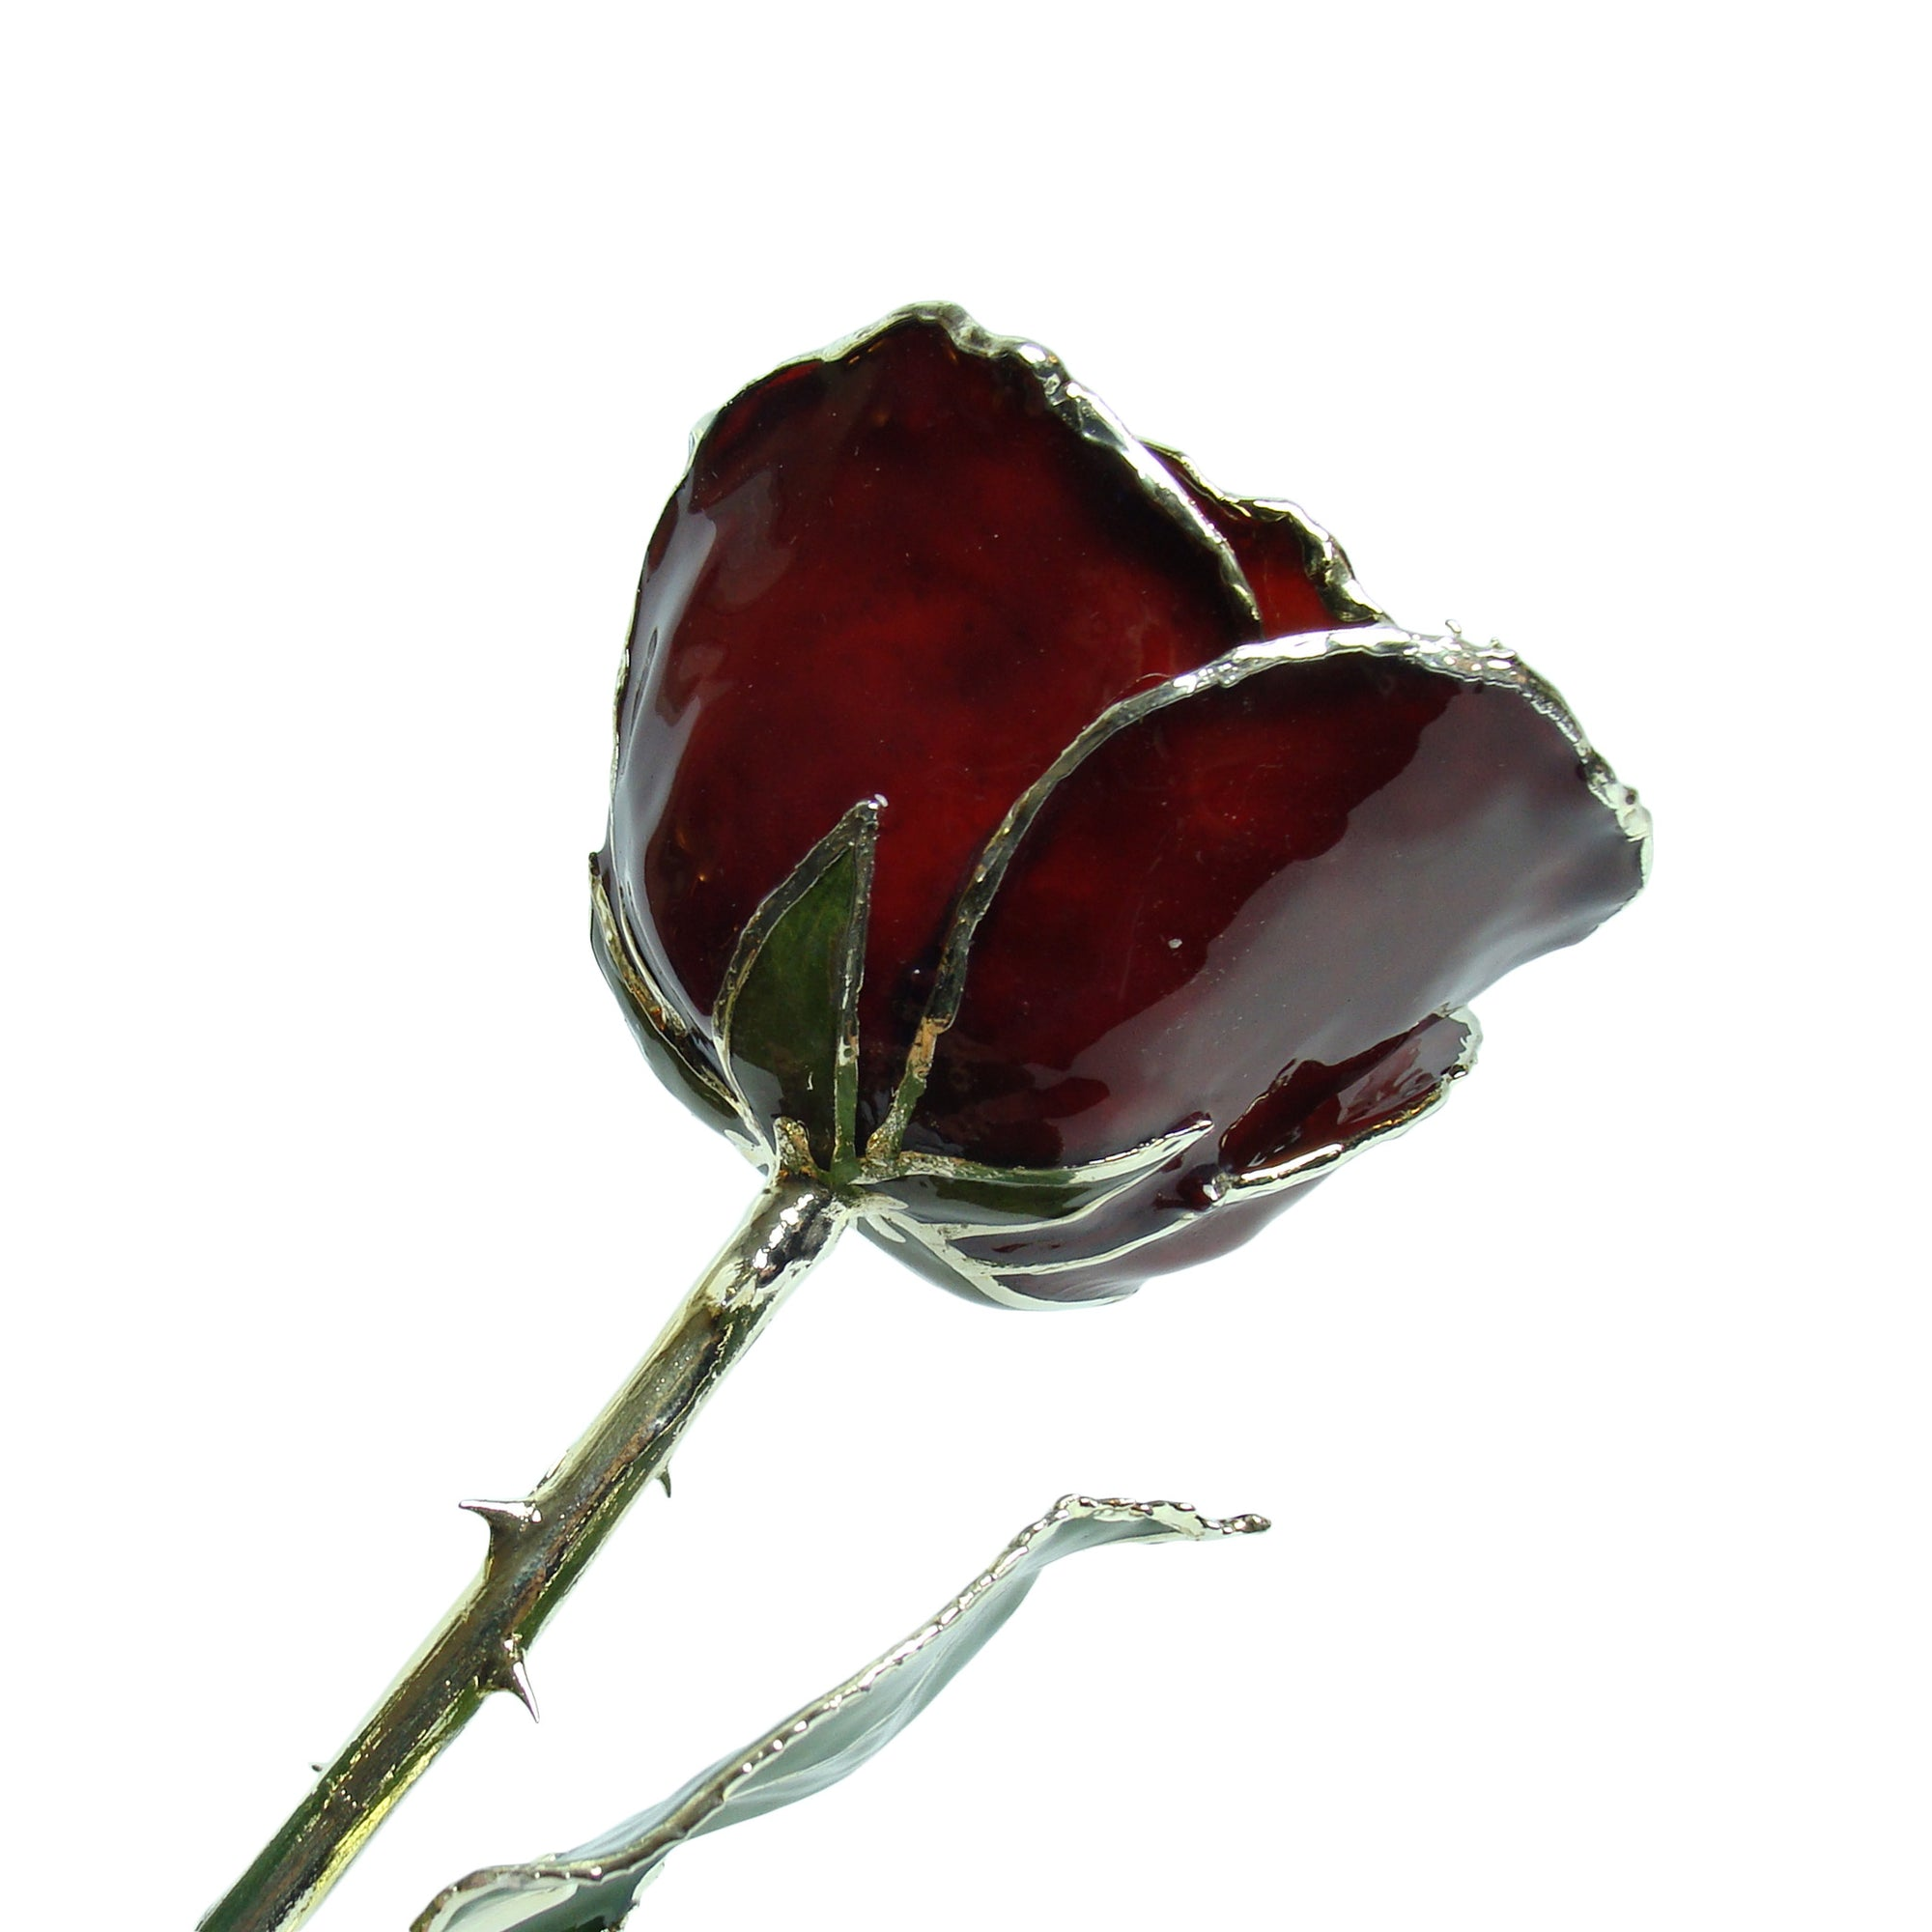 Silver Trimmed Forever Rose with Burgundy Petals. View of Stem, Leaves, and Rose Petals and Showing Detail of Silver Trim